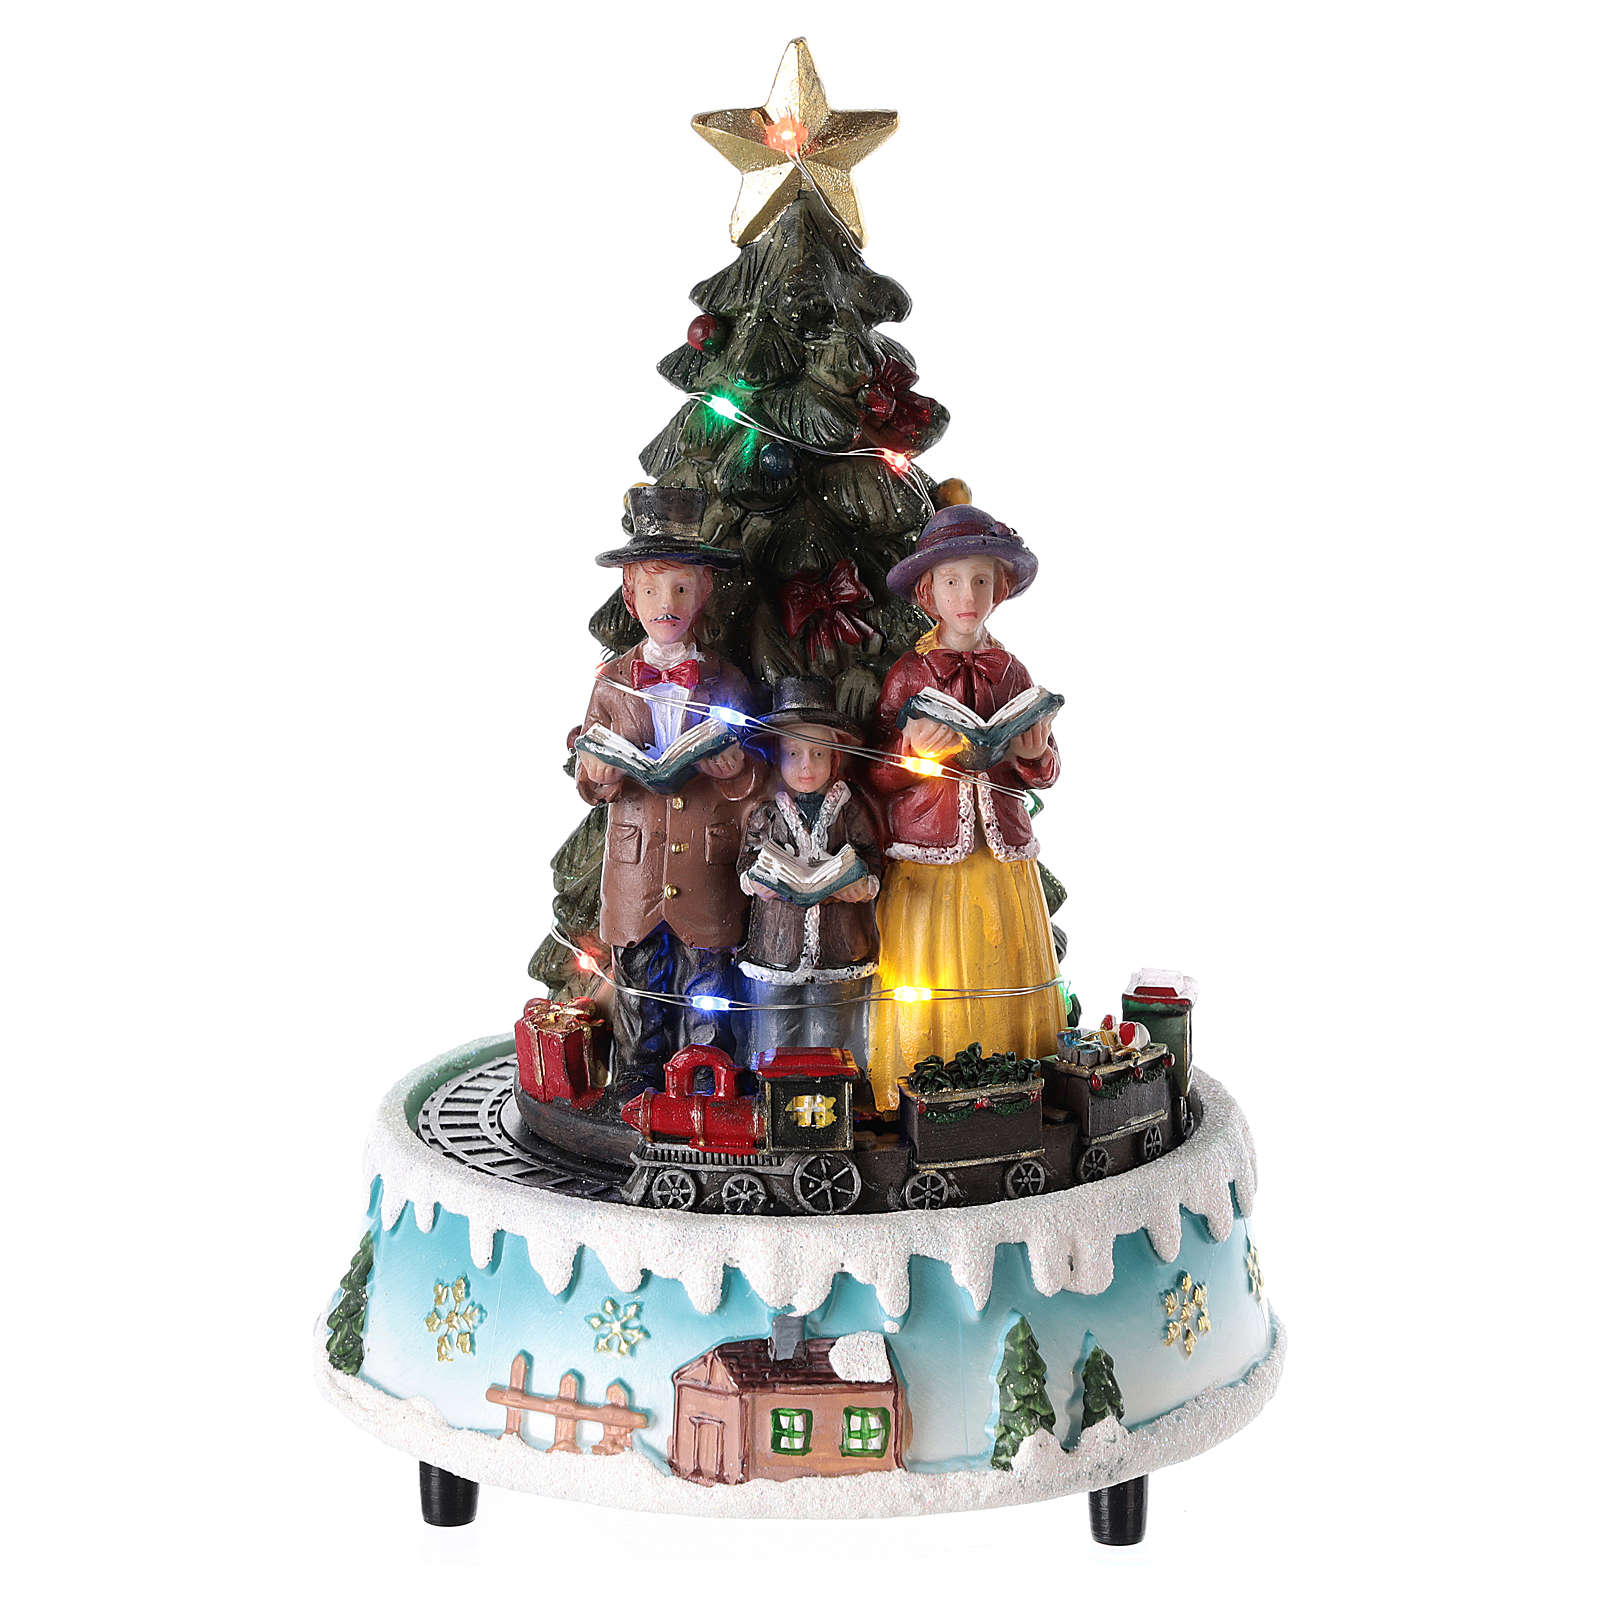 Christmas tree with carolers 15x20 cm 3